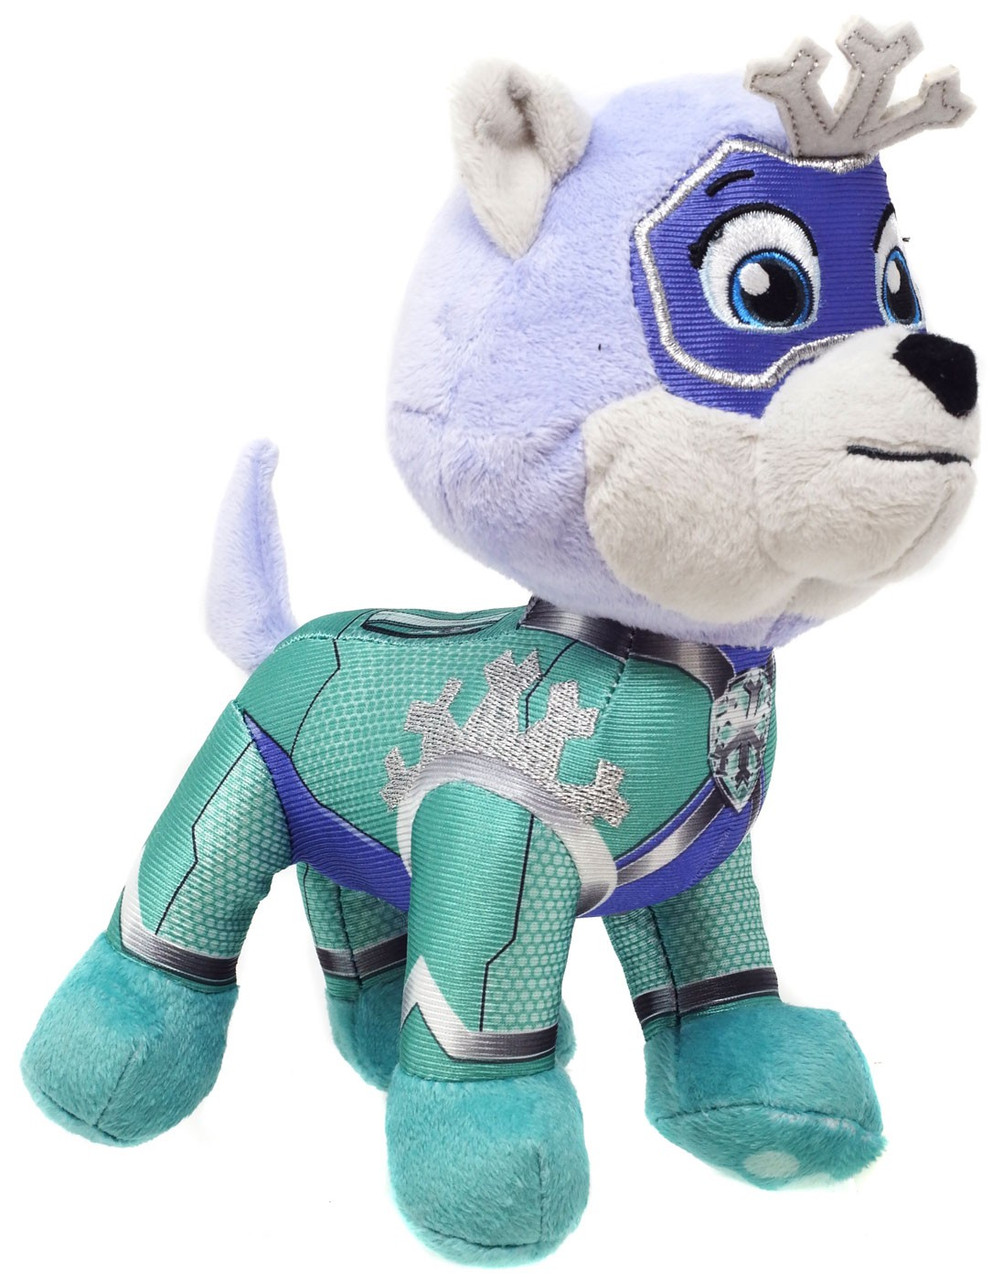 Paw Patrol EVEREST Plush Super Paws Mighty Pups Dog Stuffed Animal New With Tags